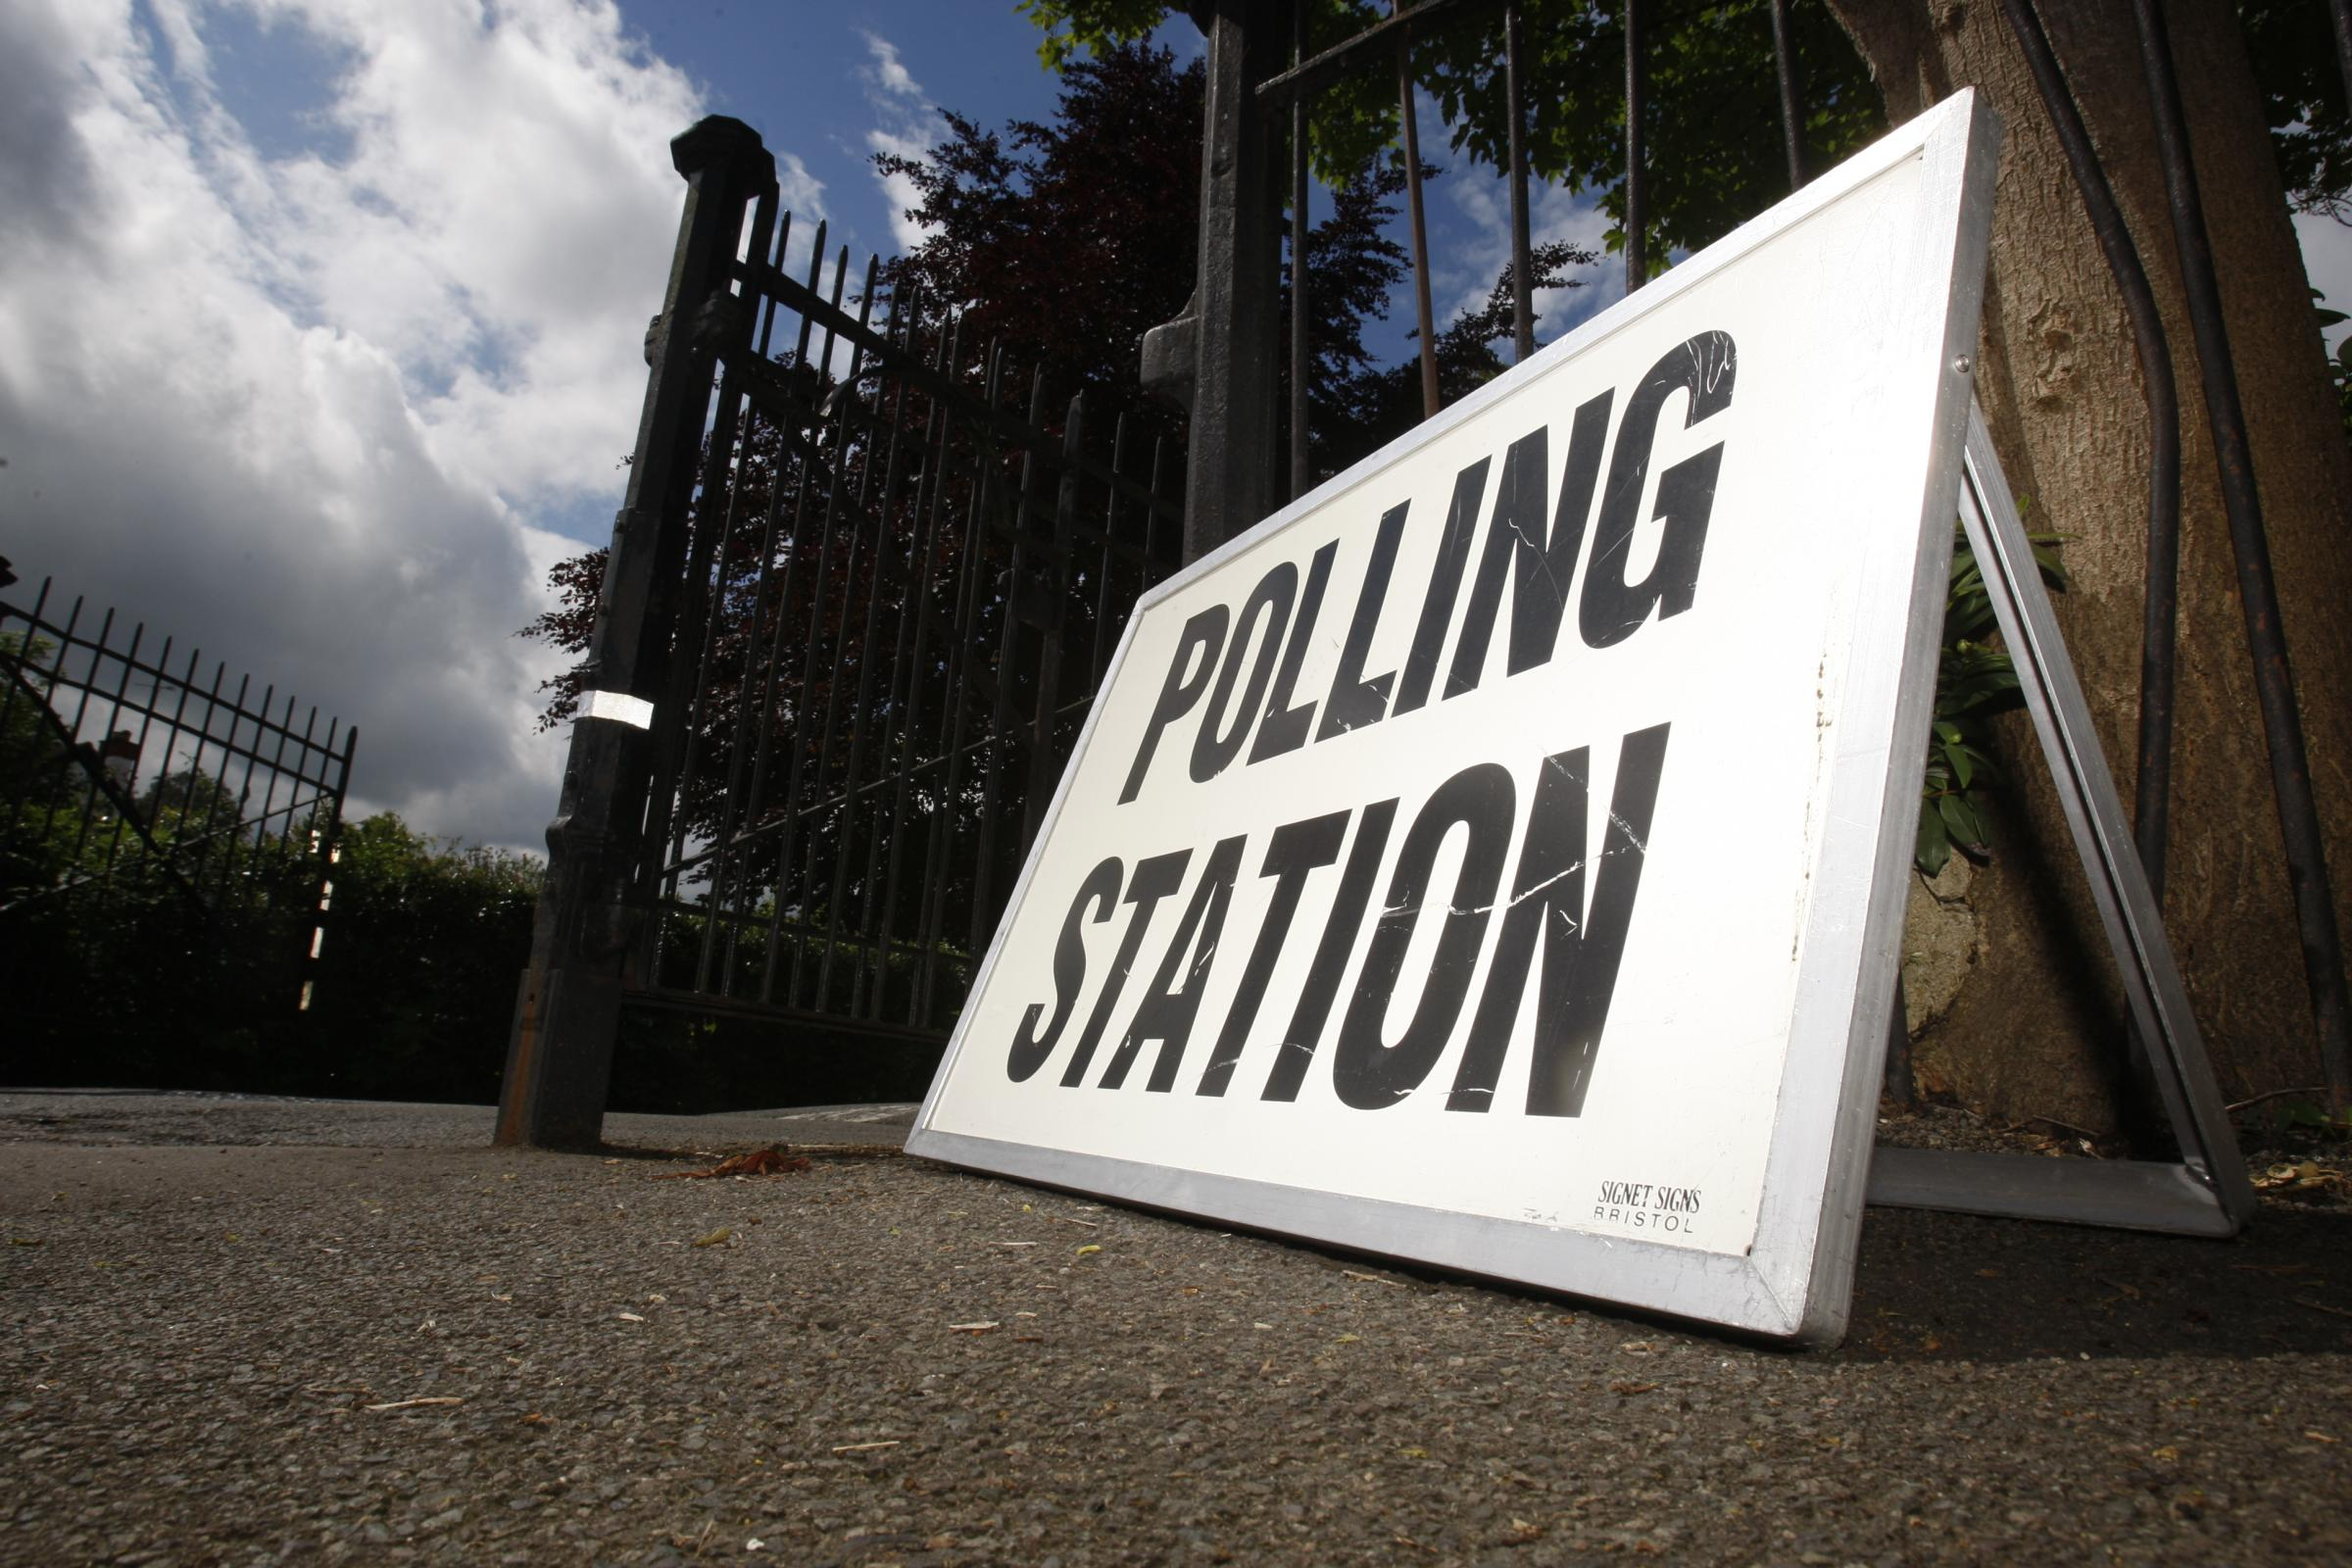 People will take to the polls today to vote for their new Enfield Borough Council